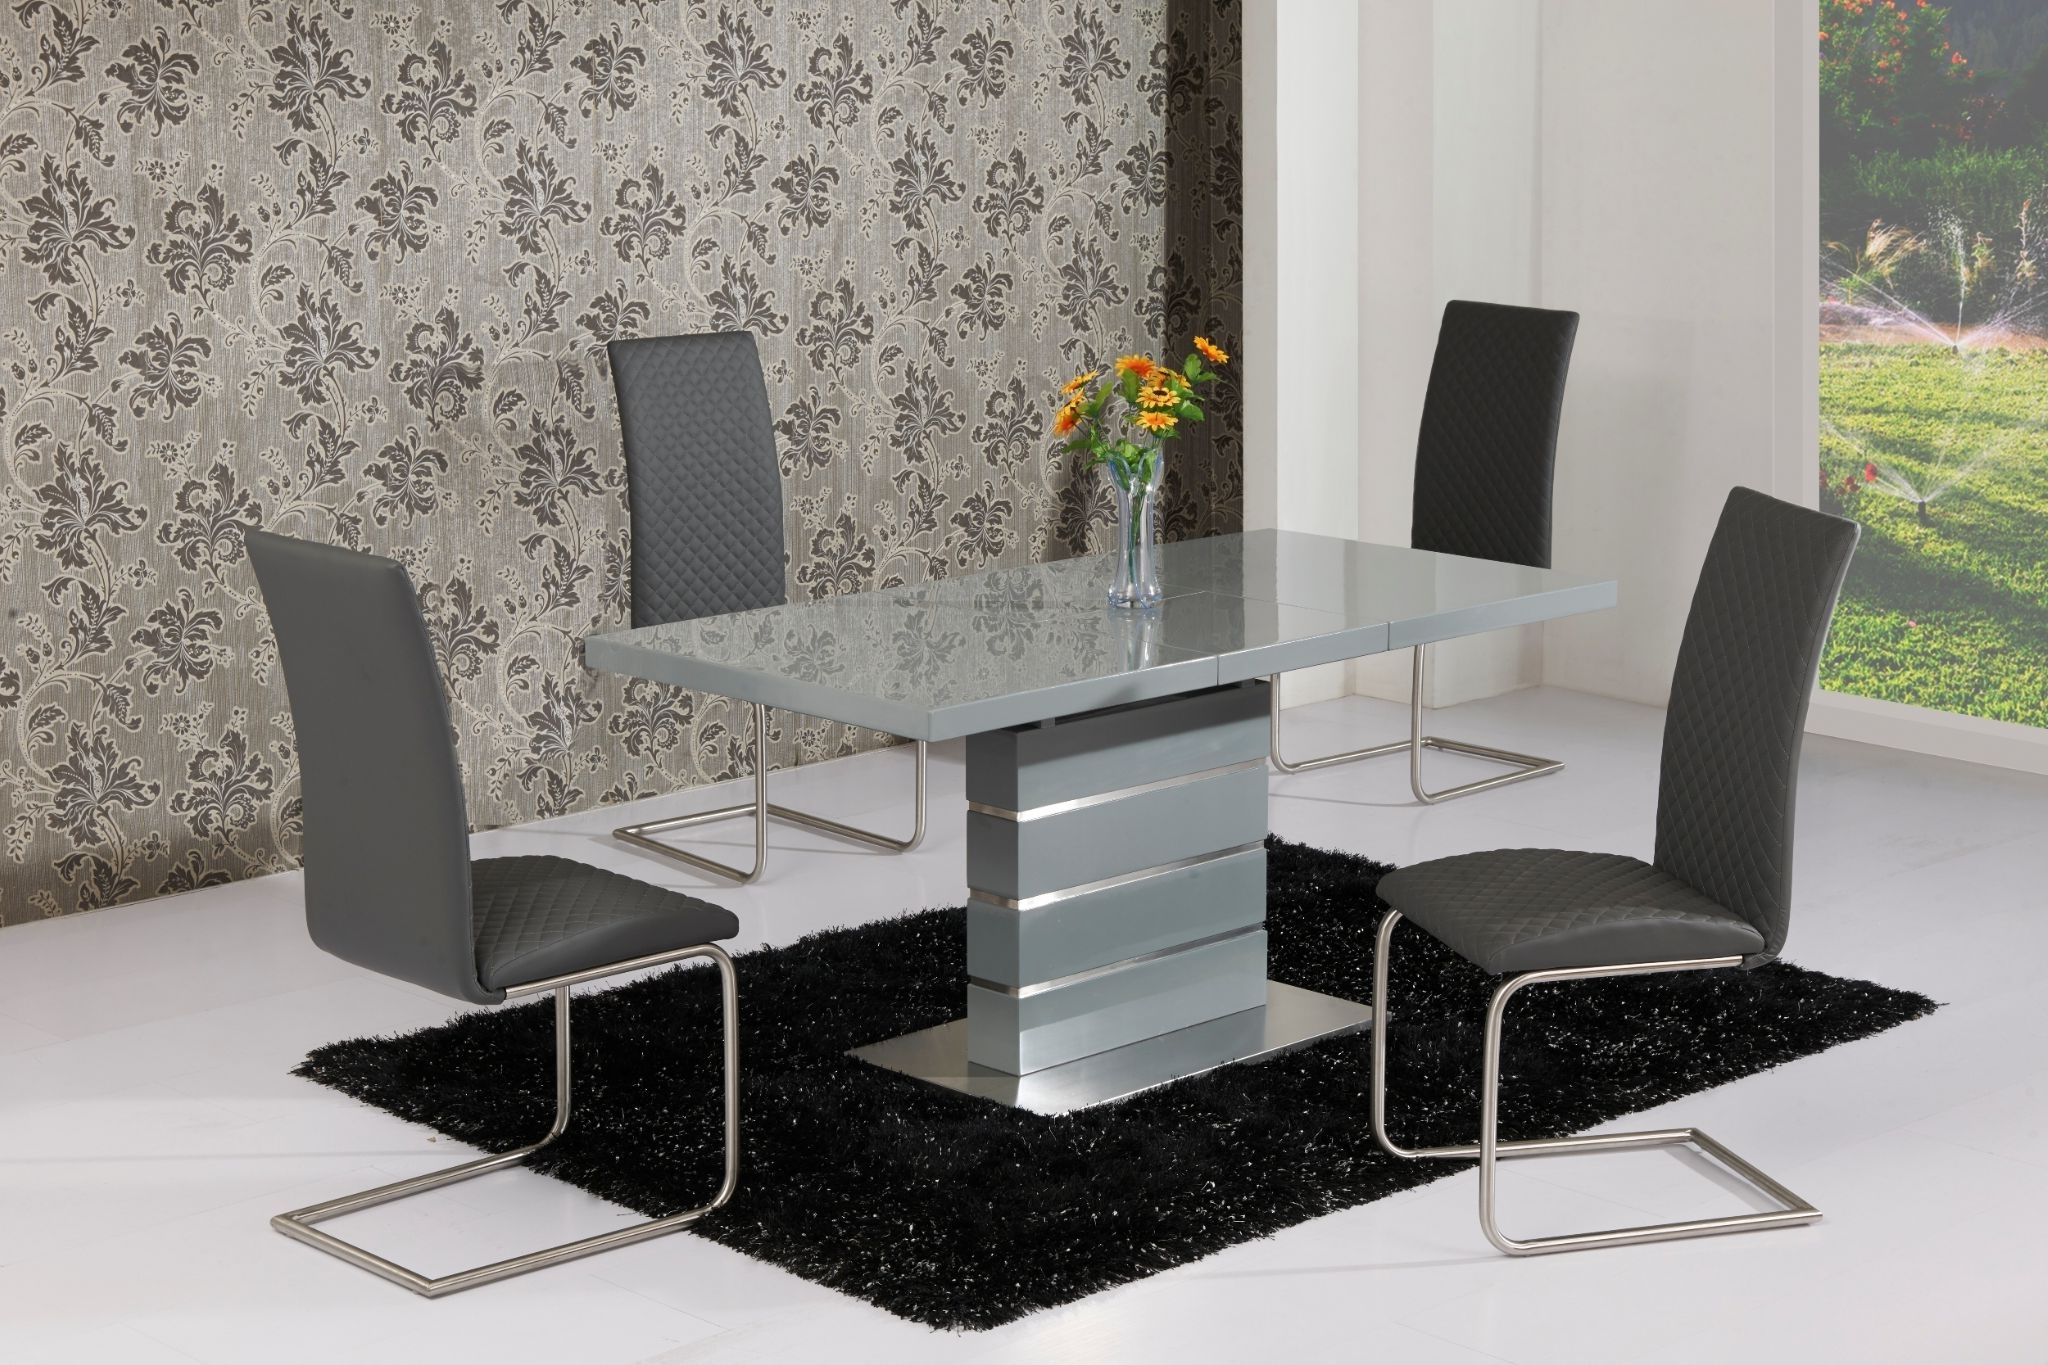 Best And Newest High Gloss Cream Dining Tables In Buy Extendable Dining Table In Grey White Or Cream (Gallery 14 of 25)